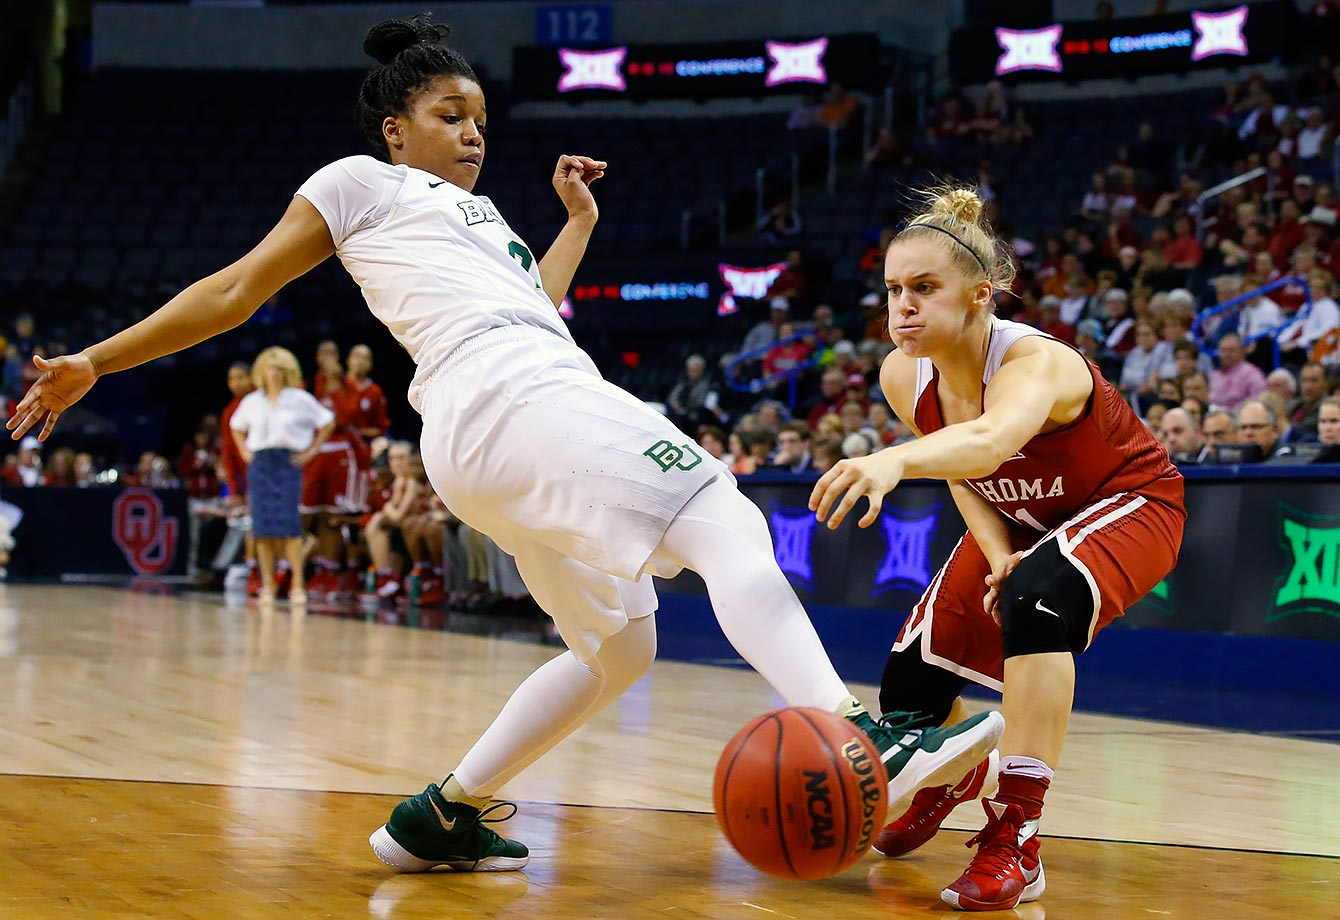 Oklahoma's Derica Wyatt passes the ball around Baylor's Niya Johnson in the second quarter of a Big 12 women's tournament game in Oklahoma City.